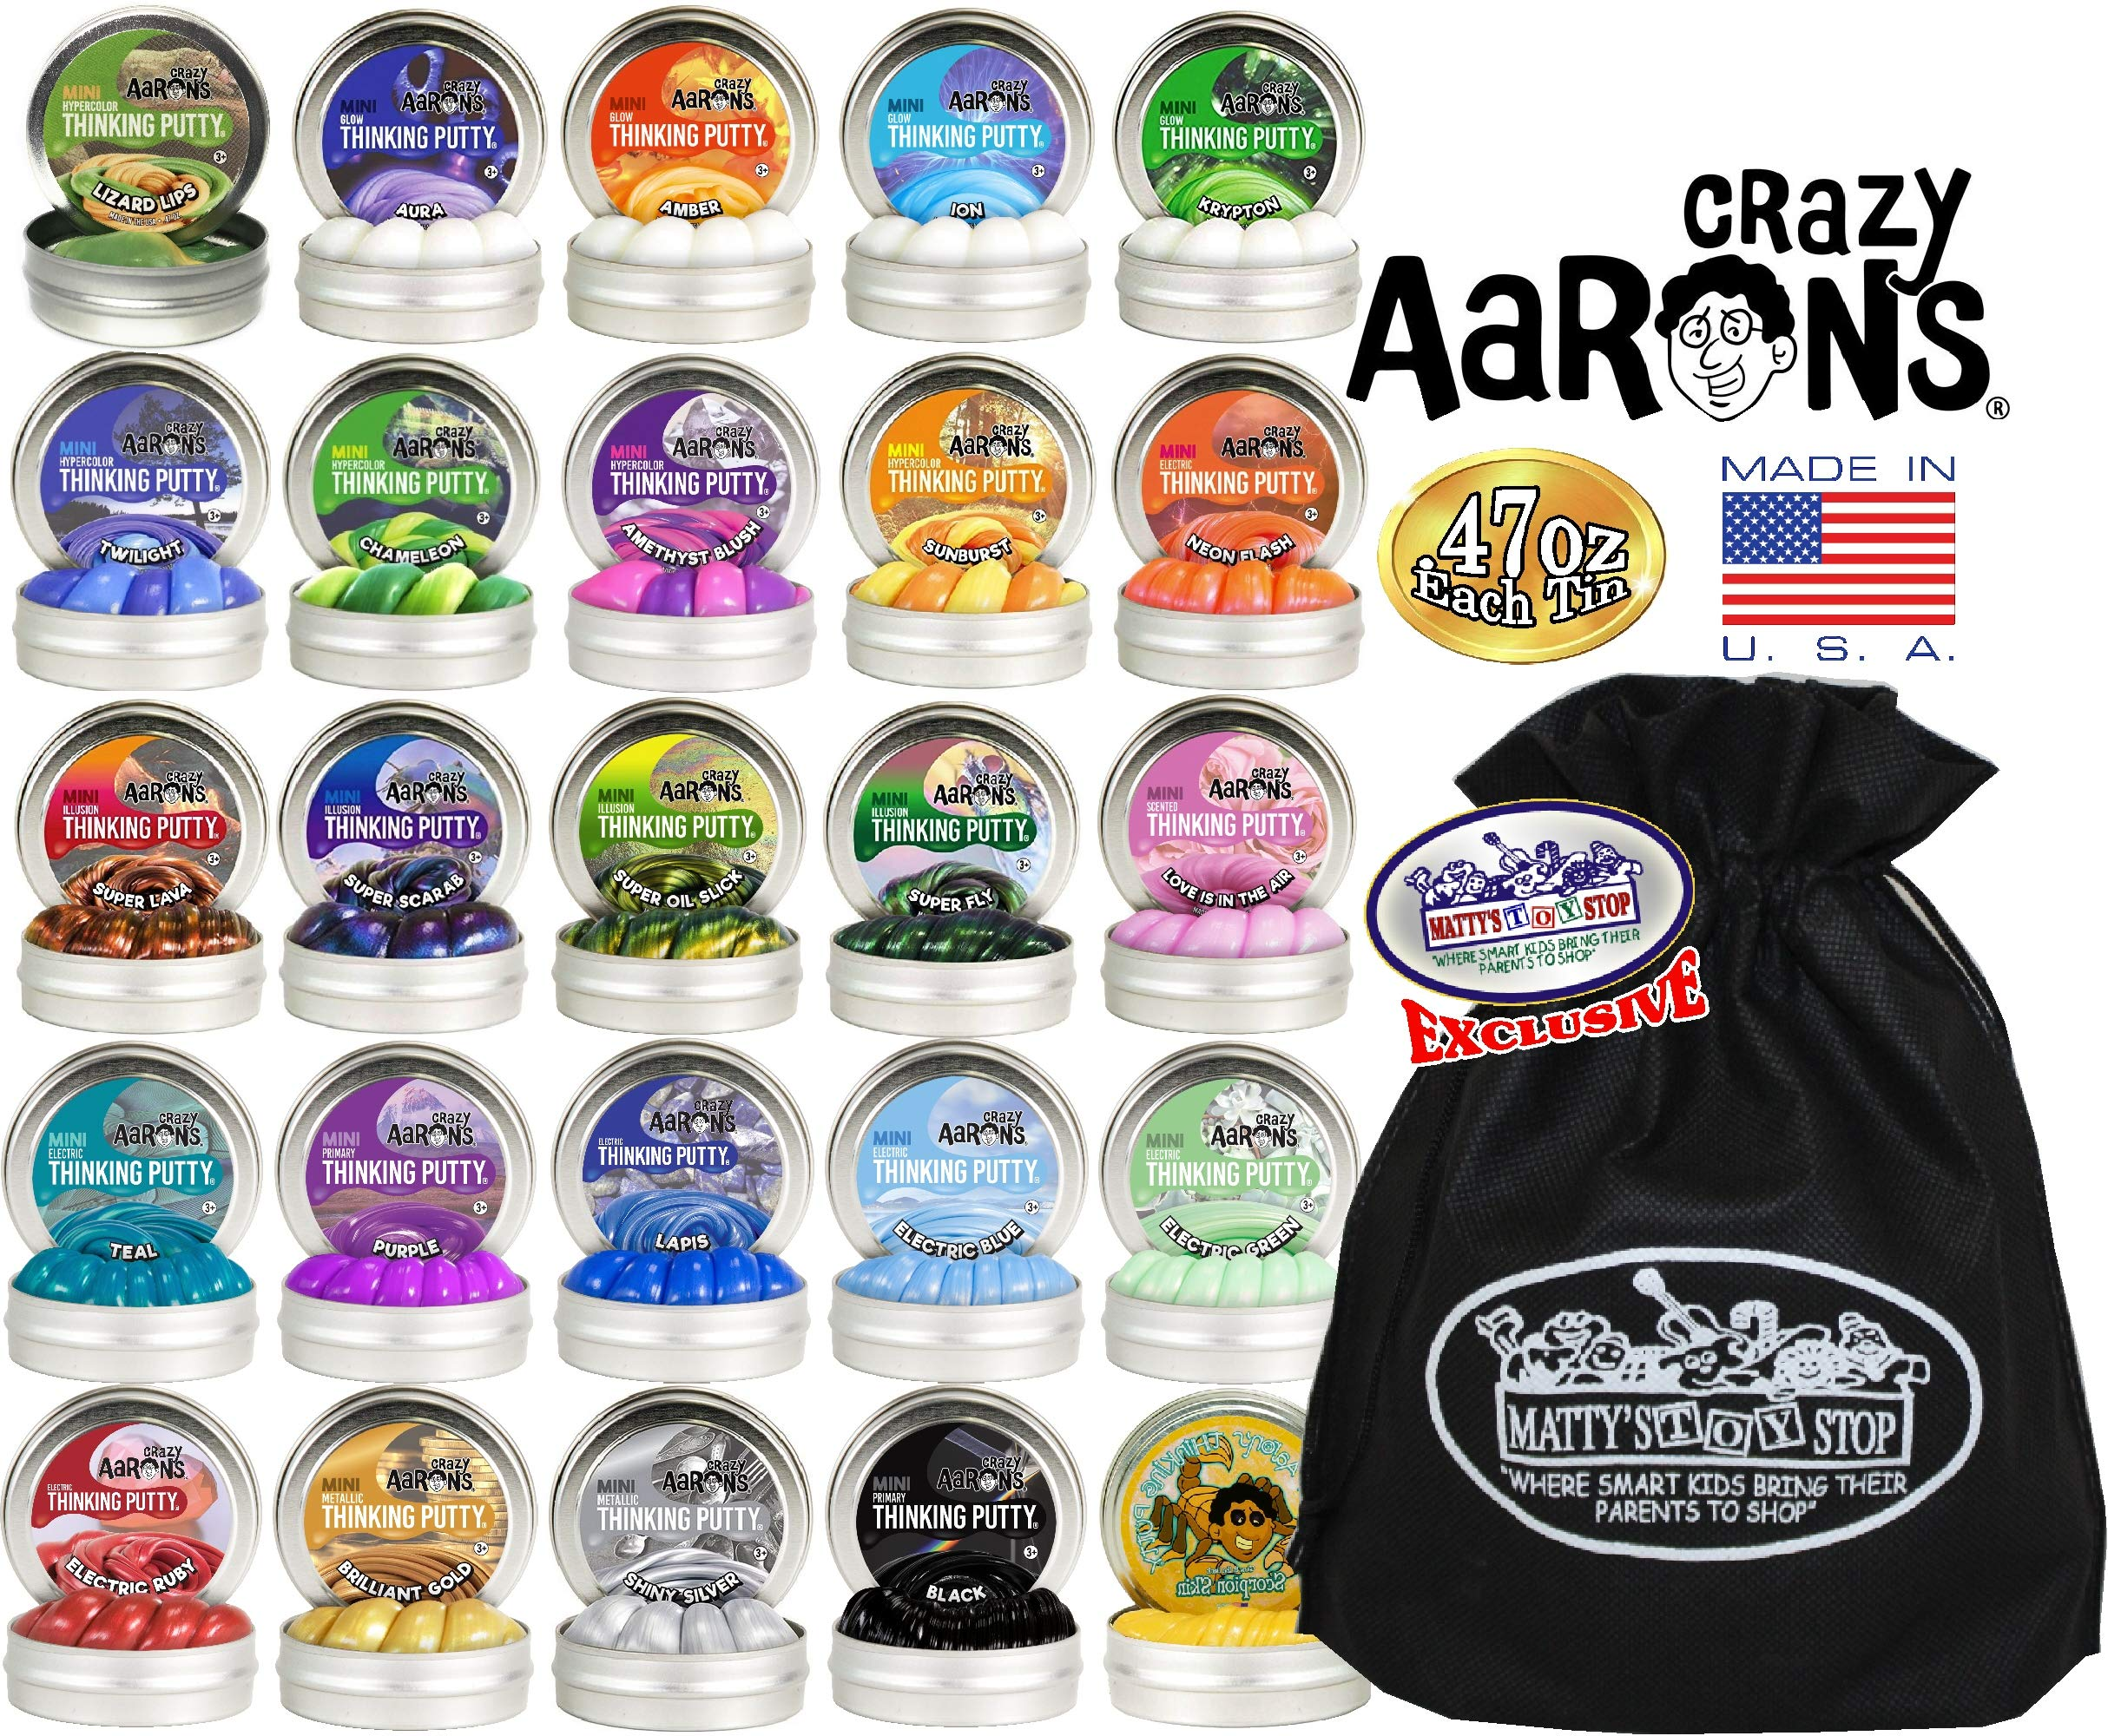 Crazy Aaron's Thinking Putty Mini Tins Deluxe Gift Set Bundle Featuring Glow, Hypercolor, Super Illusions, Scented, Electric, Primary, Metallic & Exclusive Matty's Toy Stop Bag - 25 Pack (.47 oz each) by Crazy Aaron's (Image #2)